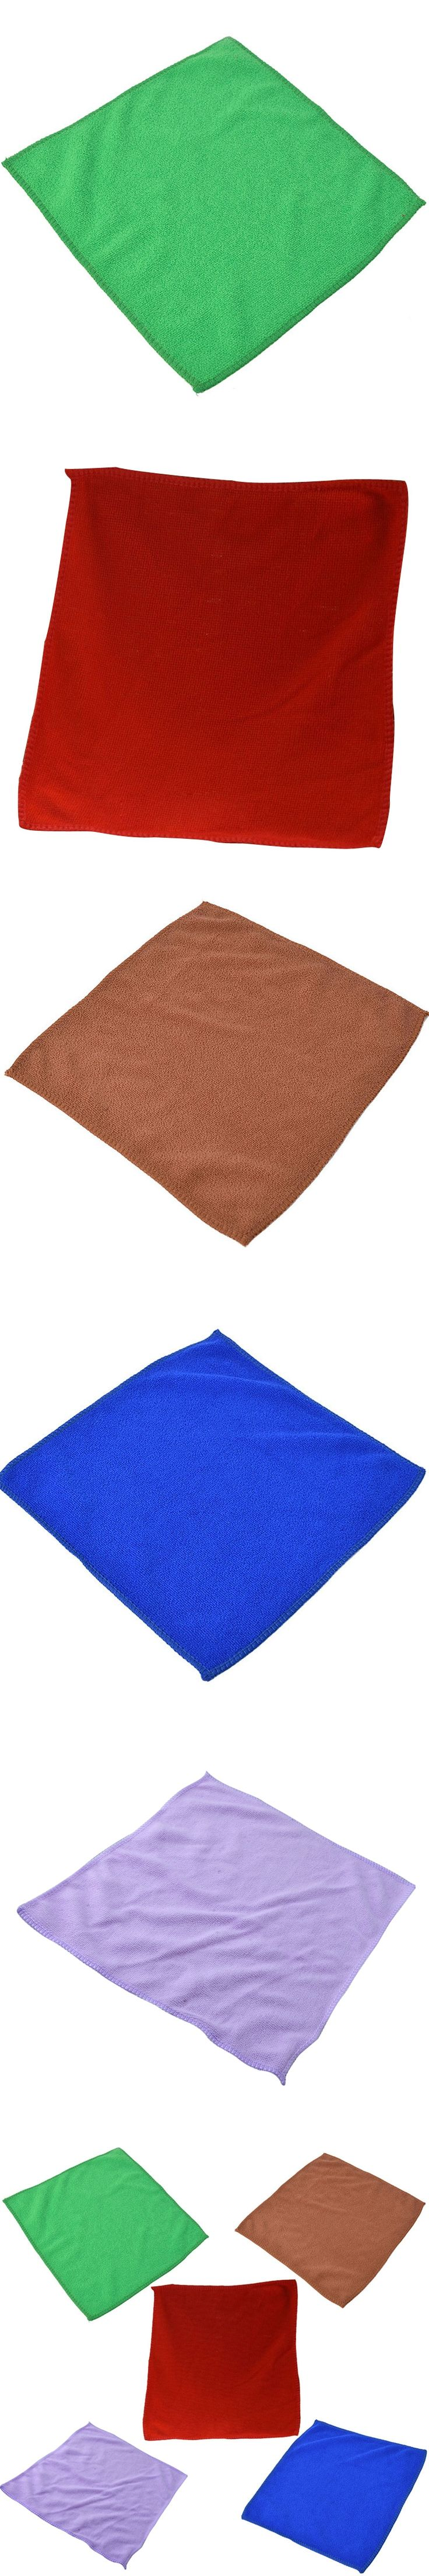 5Pcs/Pack Soft Microfiber Wash Clean Towels Cleaning Cloths Car Furniture Cleaning Duster Soft Cloths 30*30 CM